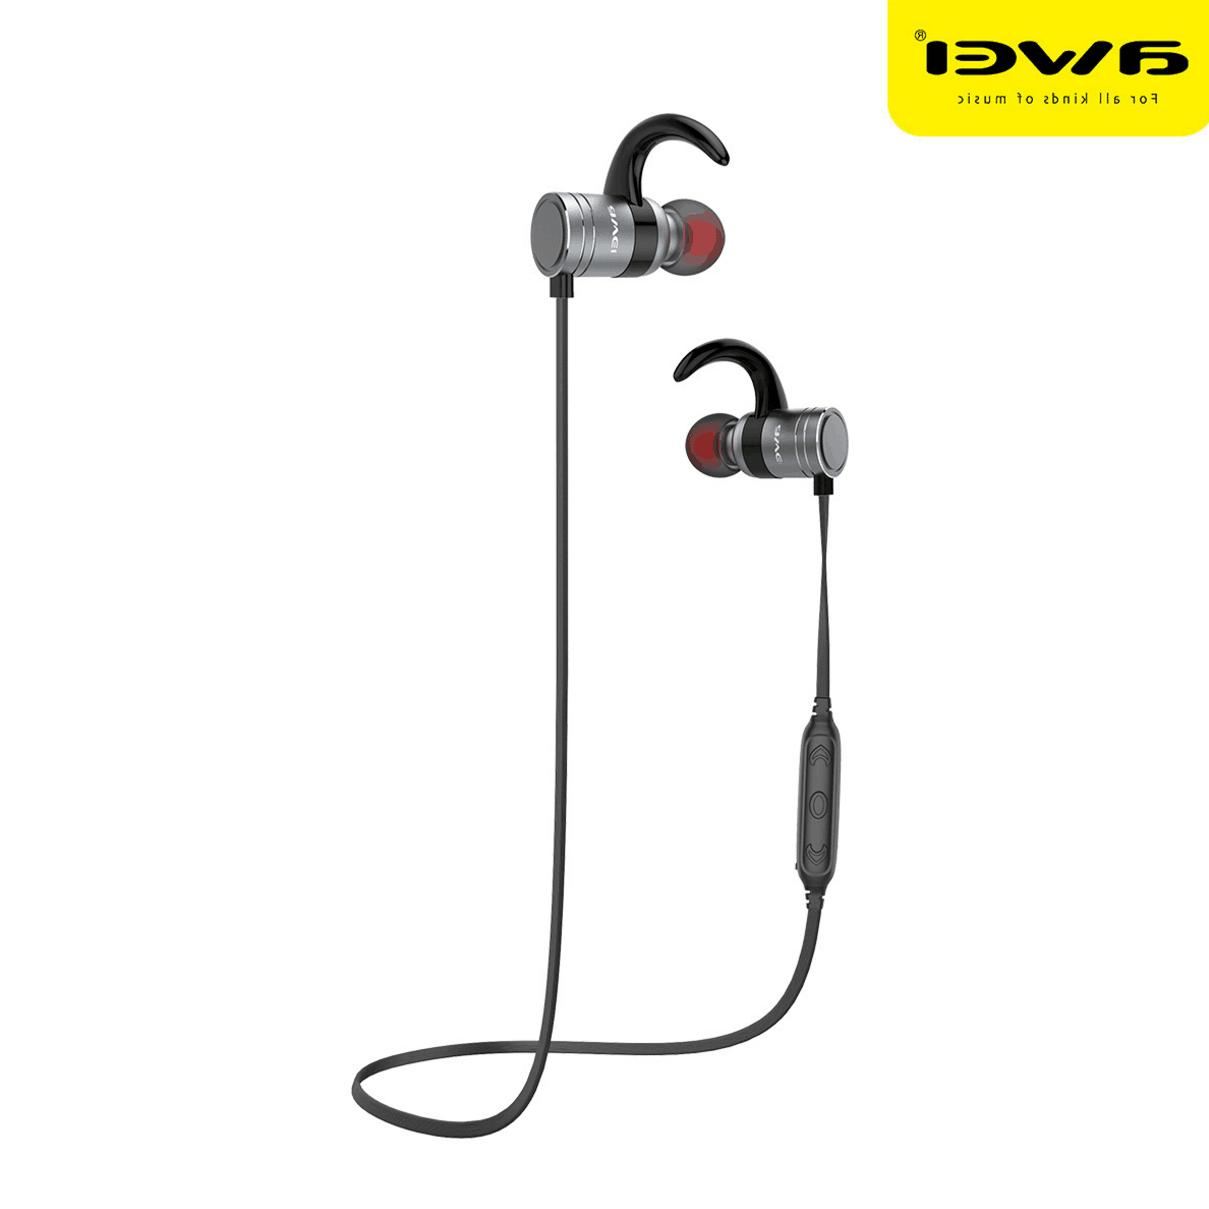 bluetooth earbuds wireless stereo earphones sport headphones